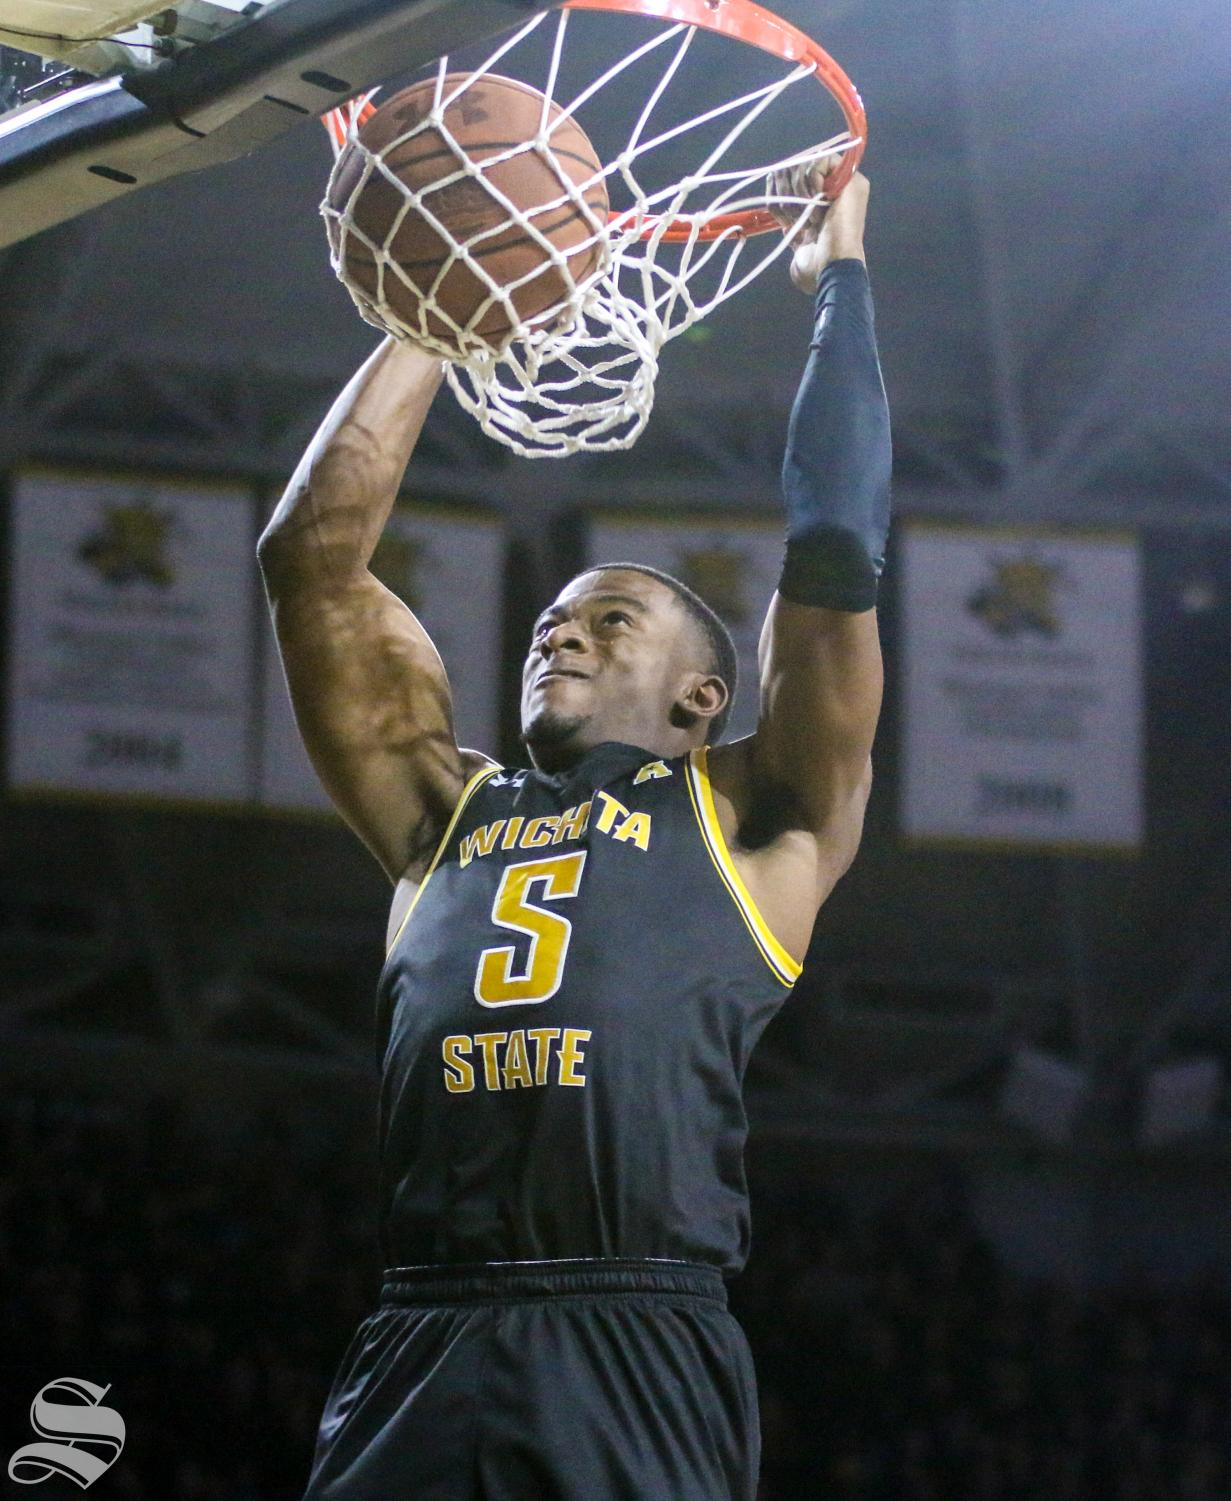 Wichita State's Trey Wade dunks on Memphis during the game at Koch Arena on Thursday, Jan. 9, 2019.